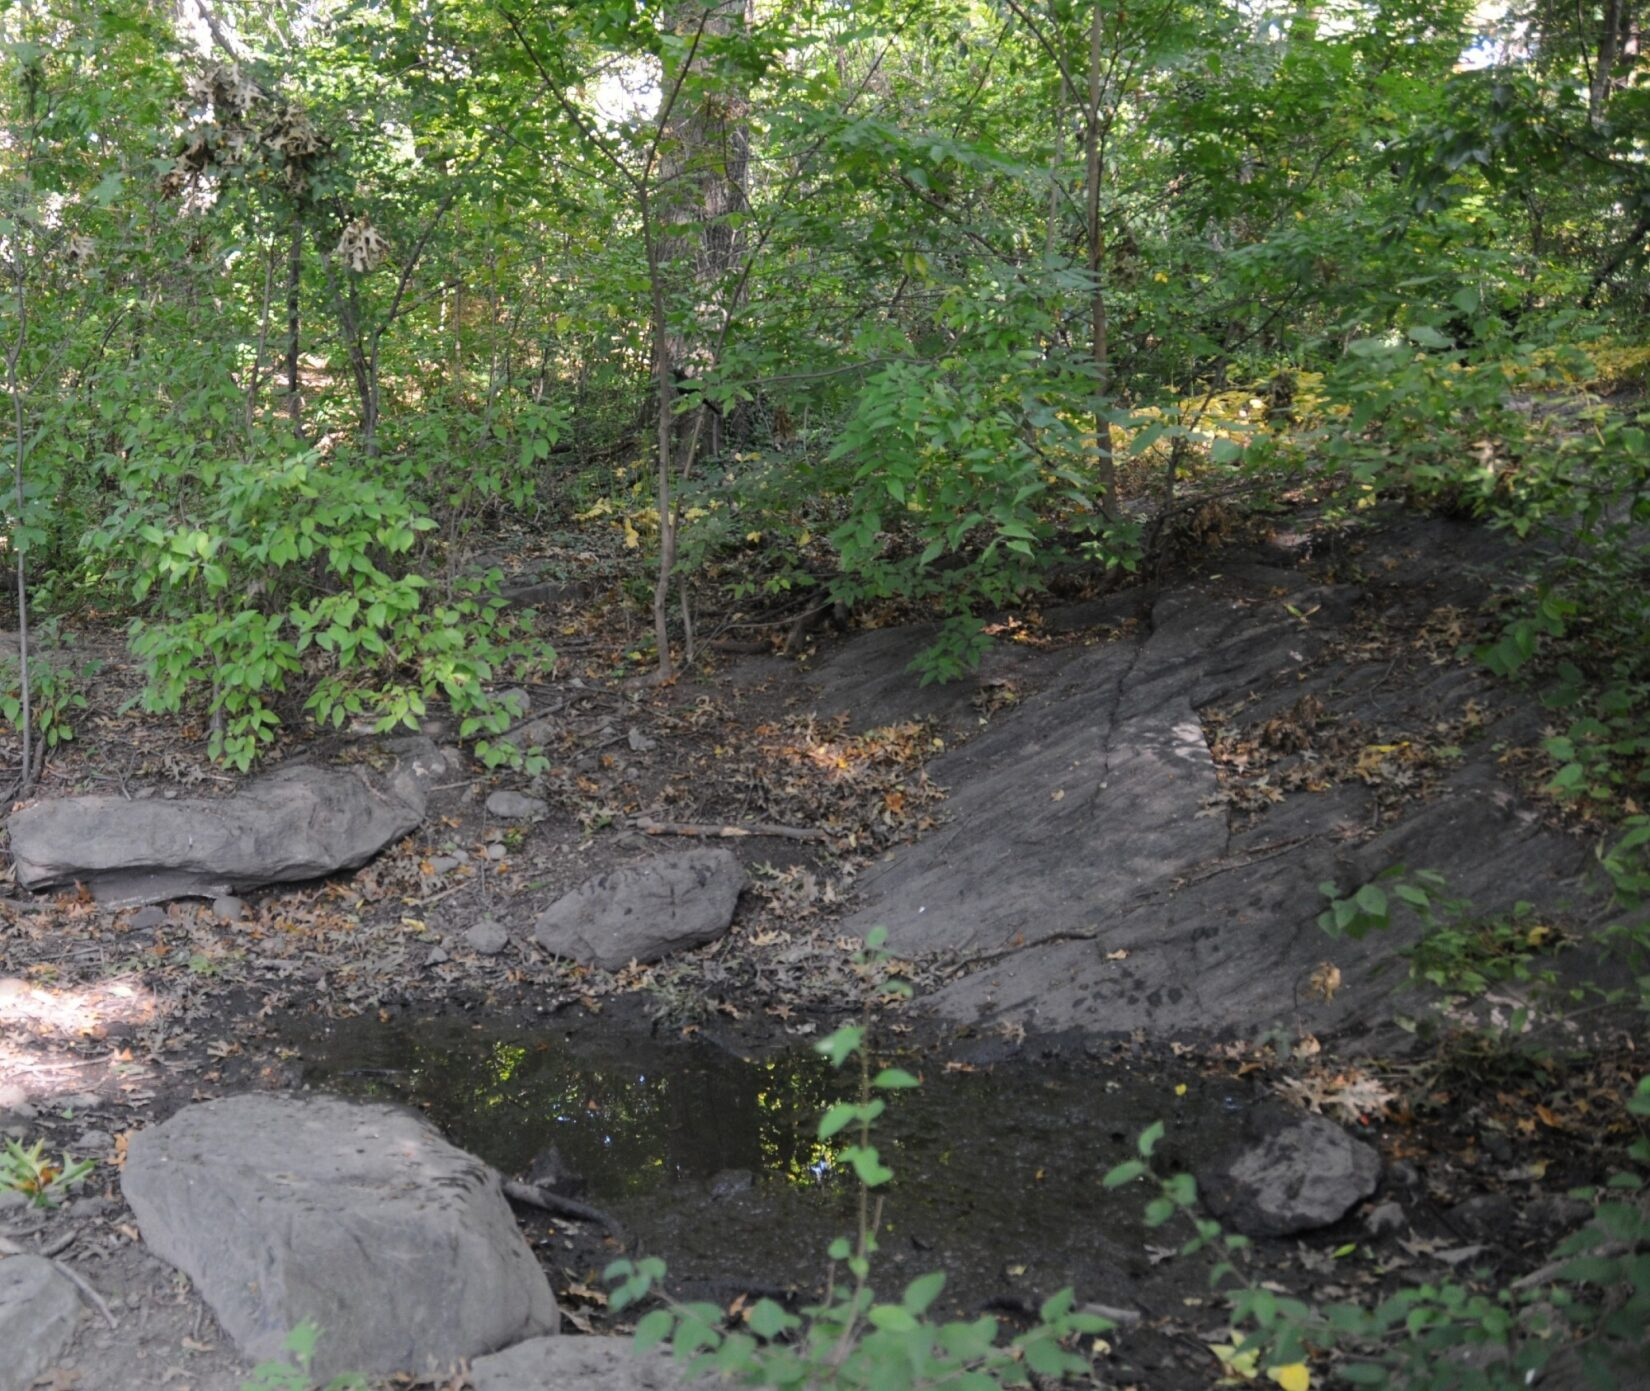 A small pool of water nestled in schist under leafy boughs